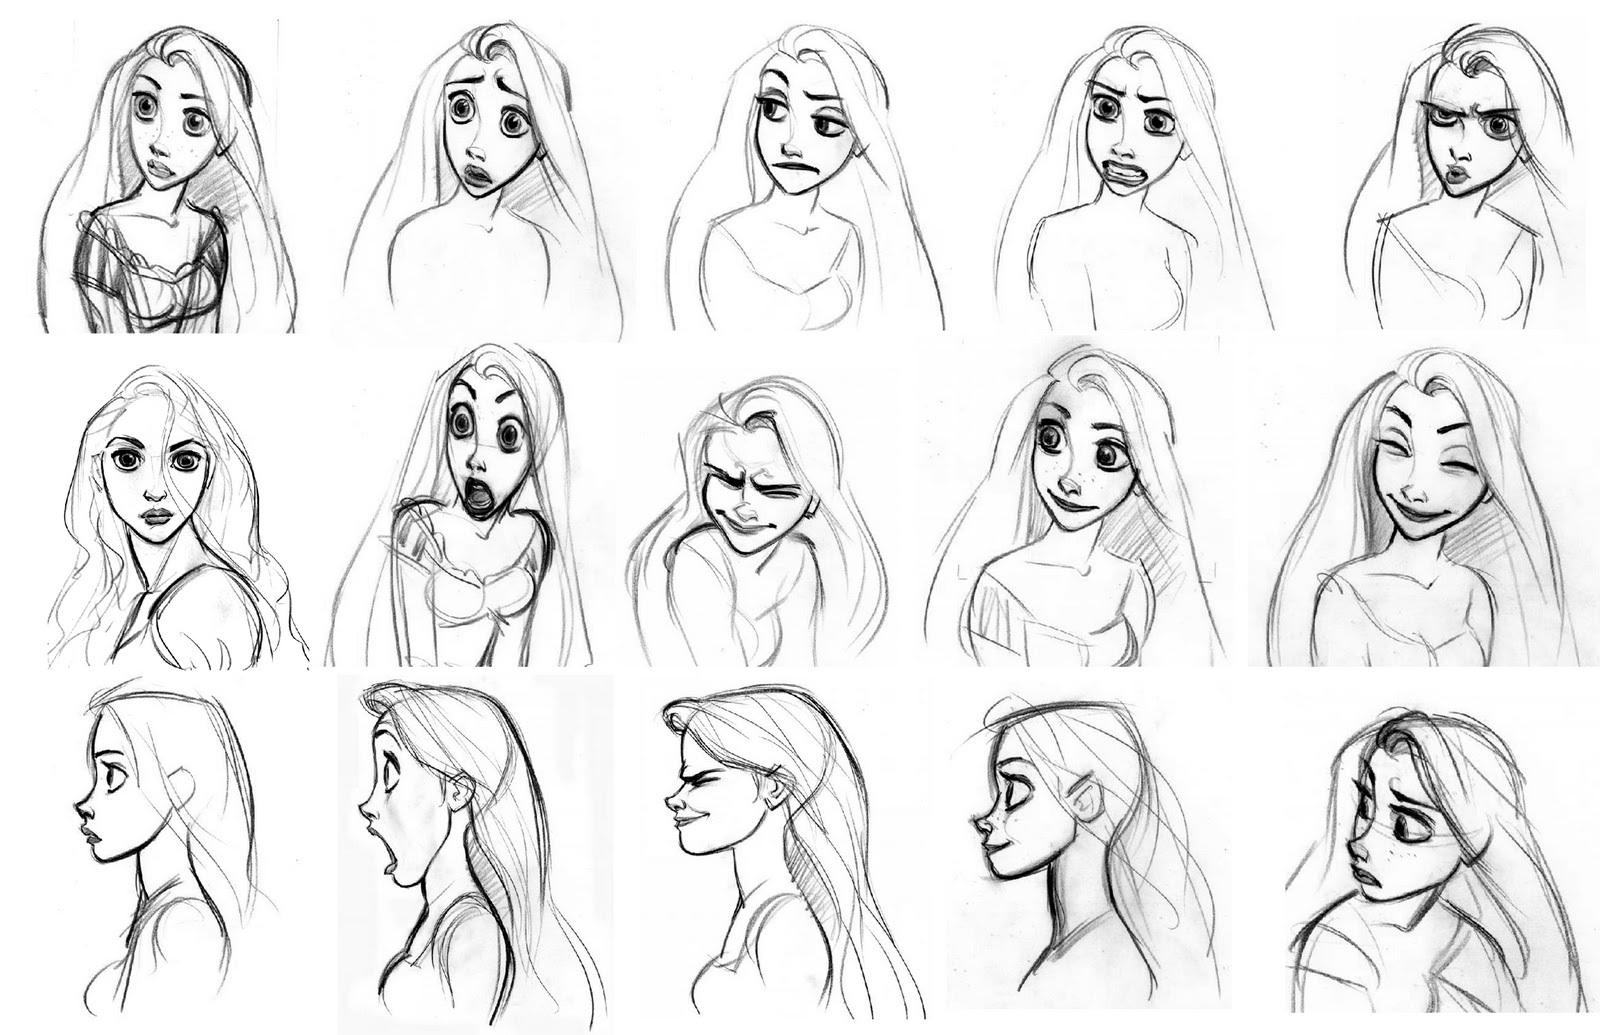 3d Character Design Books : Disney sketches images rapunzel sketch hd wallpaper and